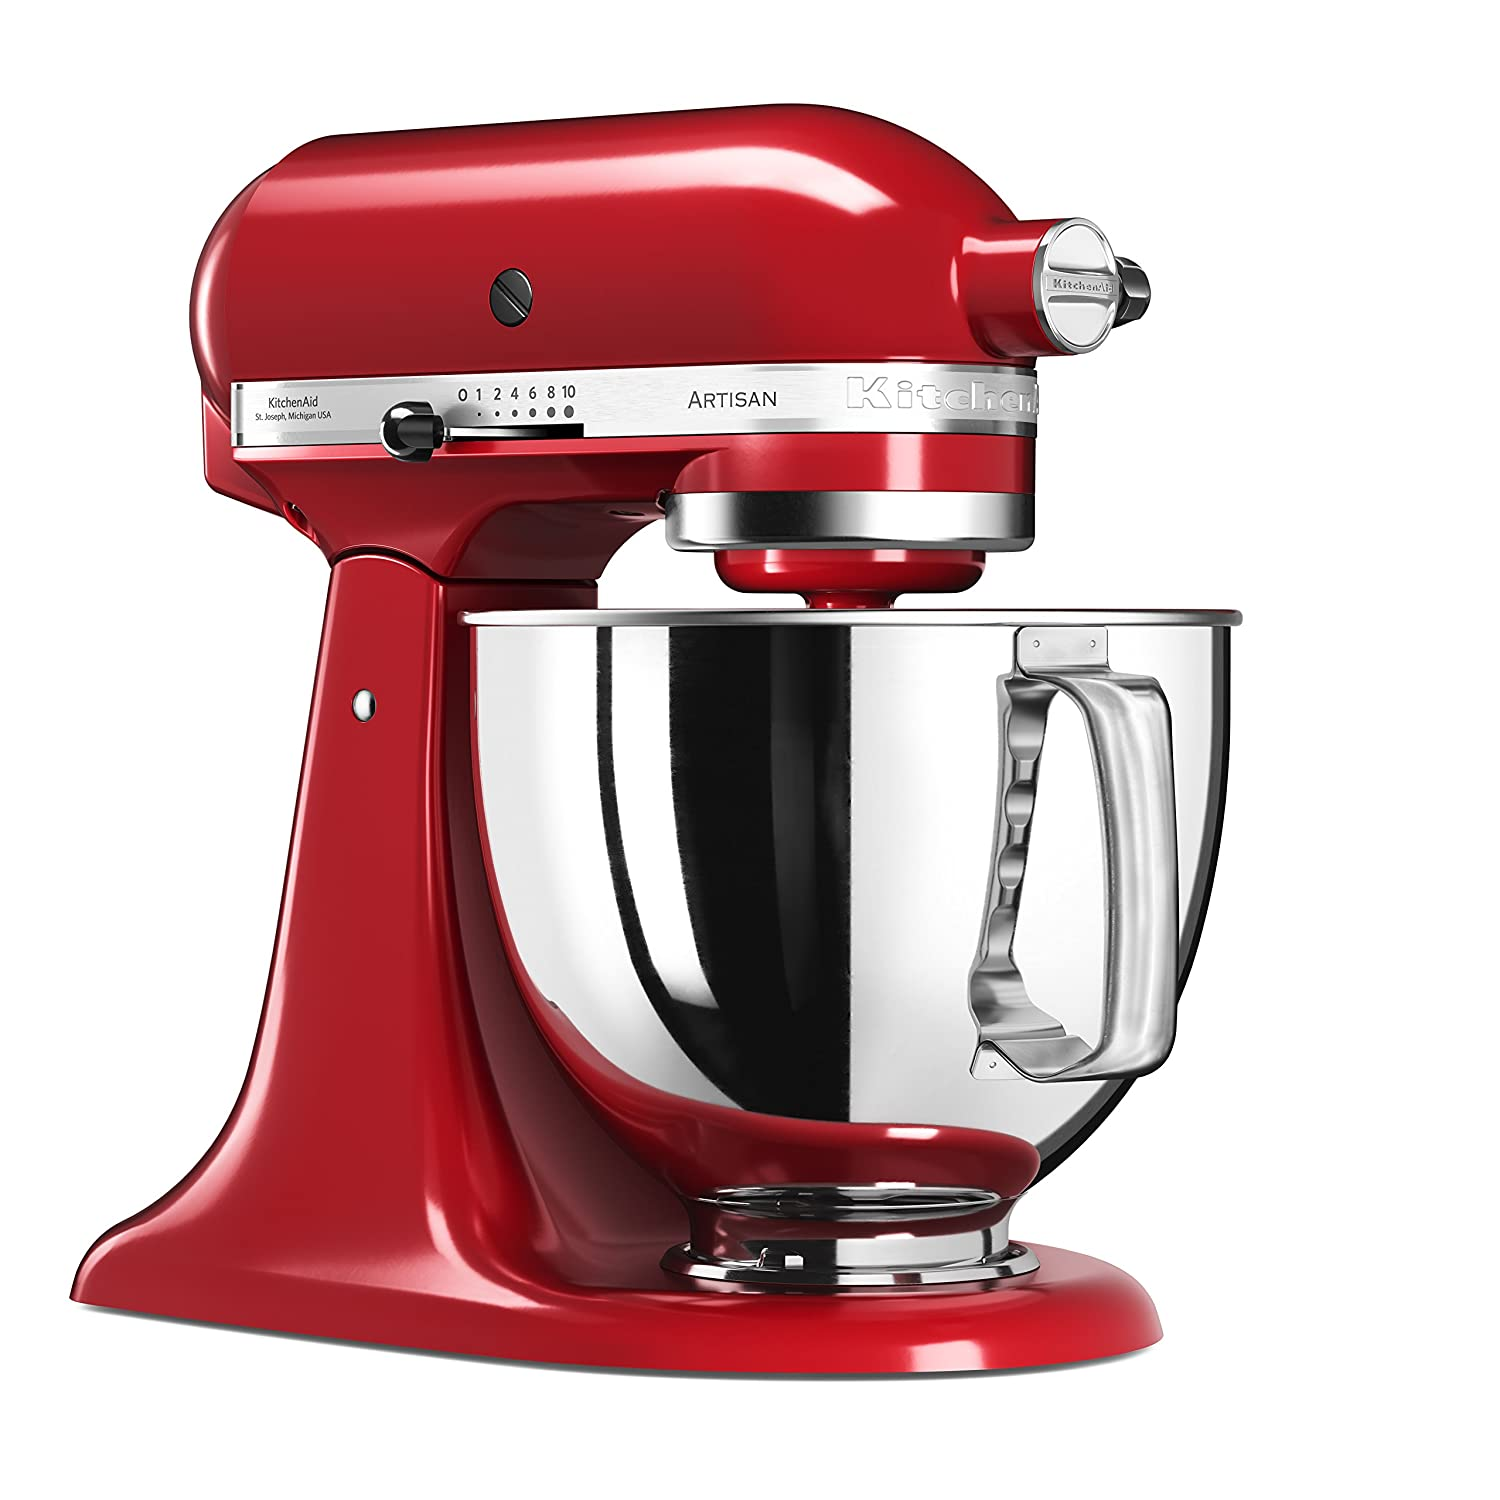 Amazon KitchenAid 5KSM125EER Artisan Küchenmaschine mit